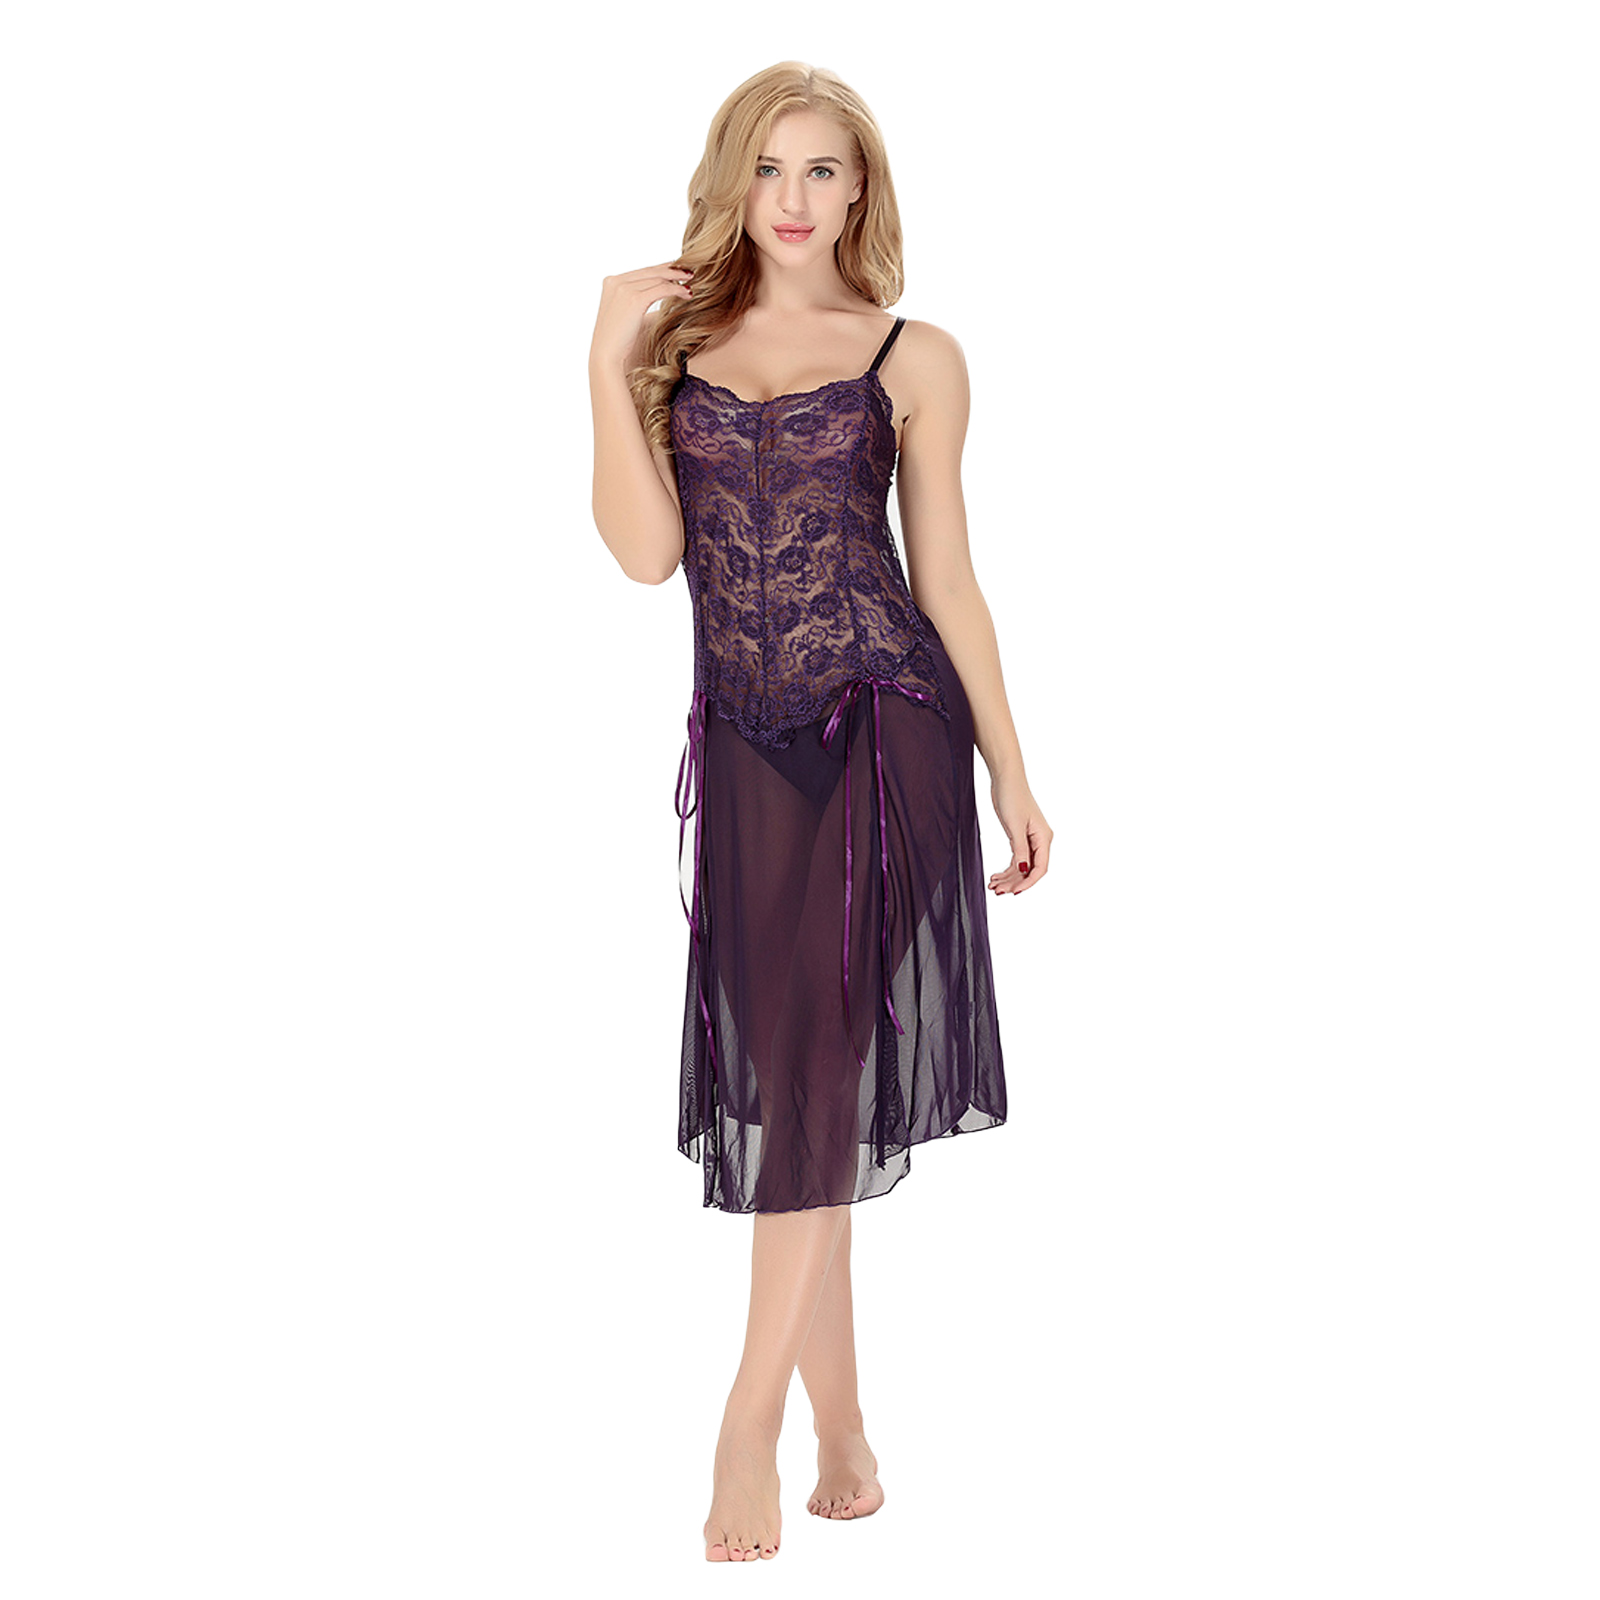 Lastest Womens Ladies Lace V-Neck Satin Chemise Babydoll Night Dress Nightwear Nightie | EBay